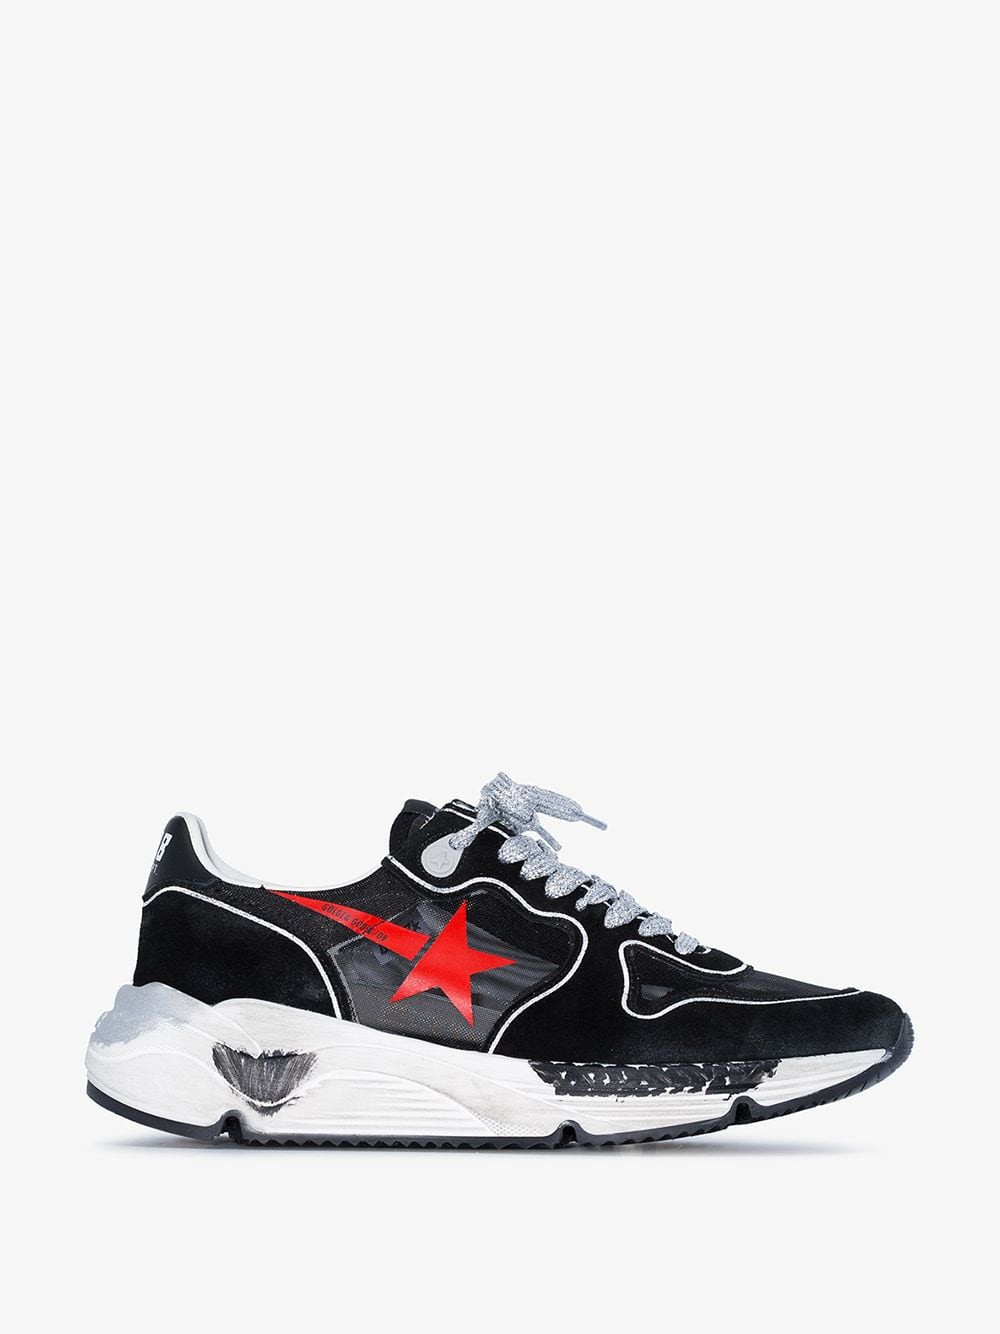 Golden Goose Deluxe Brand Golden Goose Black, Red and White Donna suede sneakers